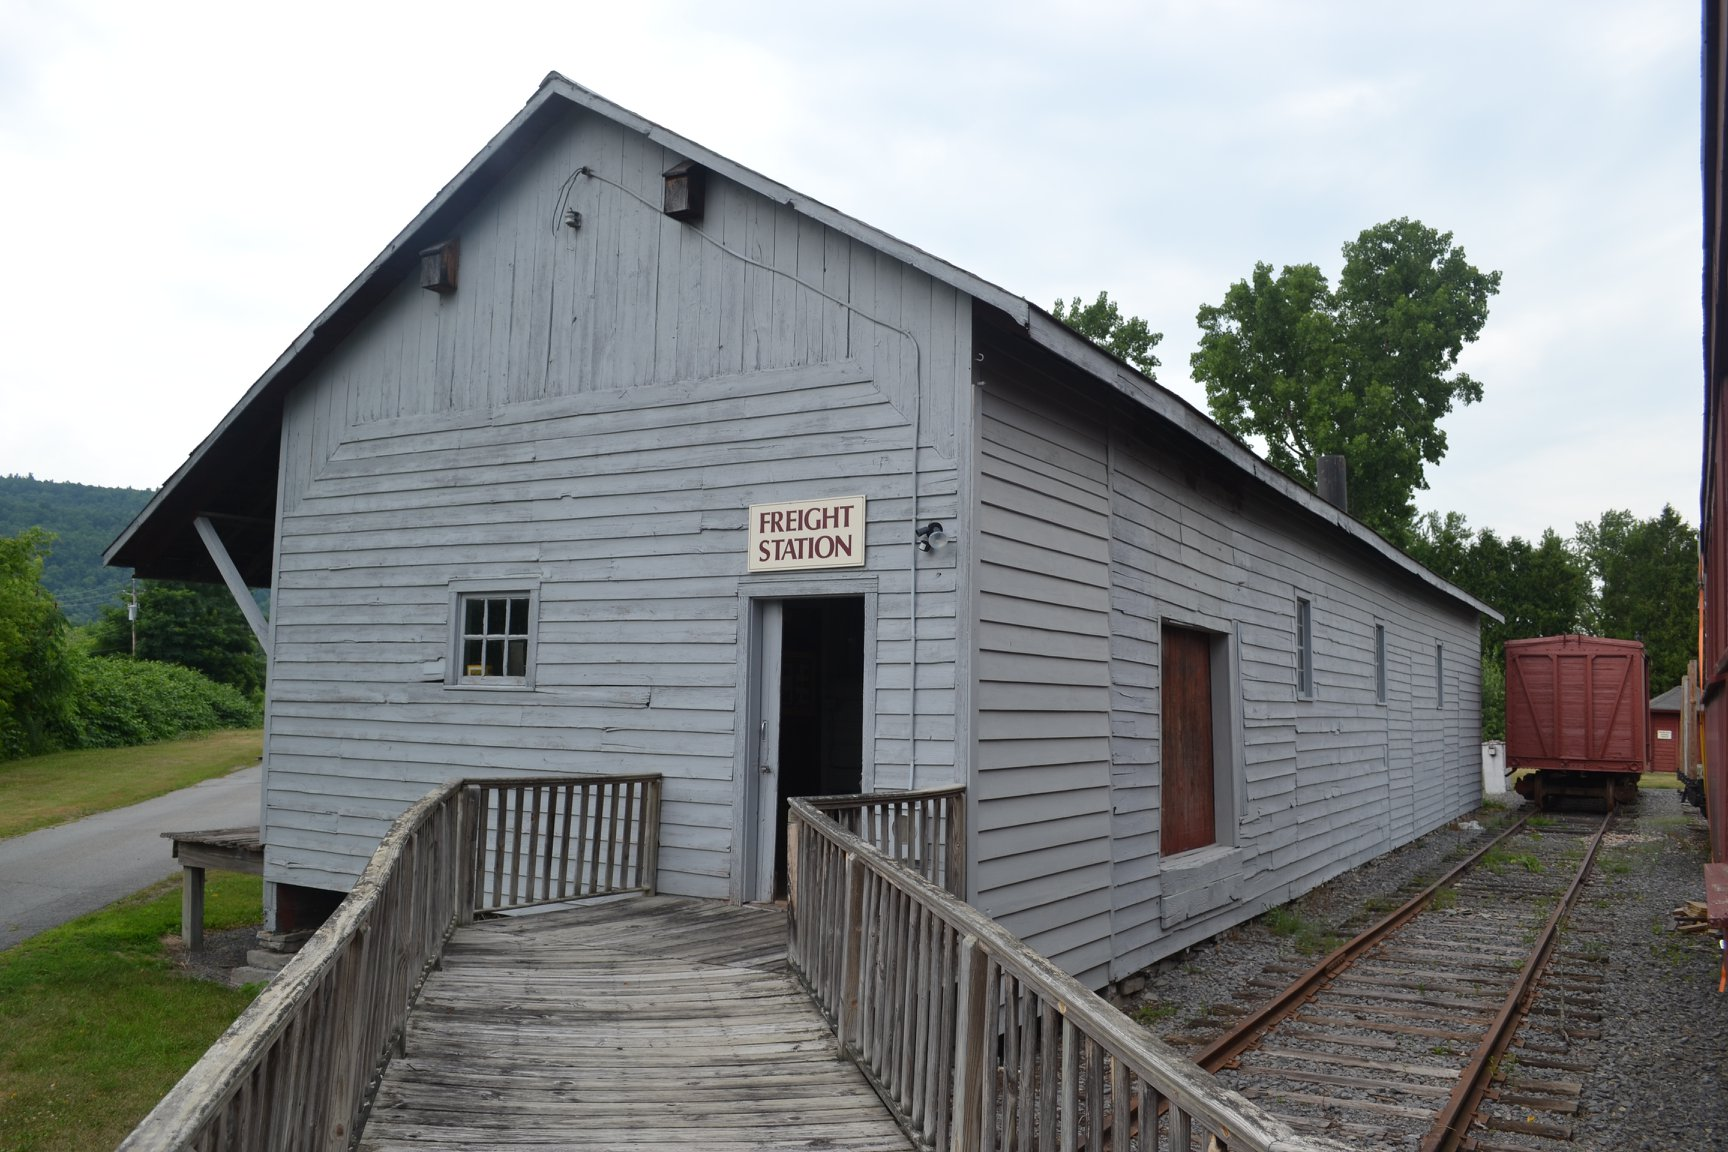 Schoharie Valley Railroad Museum : Features Main complex: Station House, Freight Shed, Engine House, Weigh Station & the Old Mill Bldg. Restored 1891 passenger car & 1917 wooden caboose.